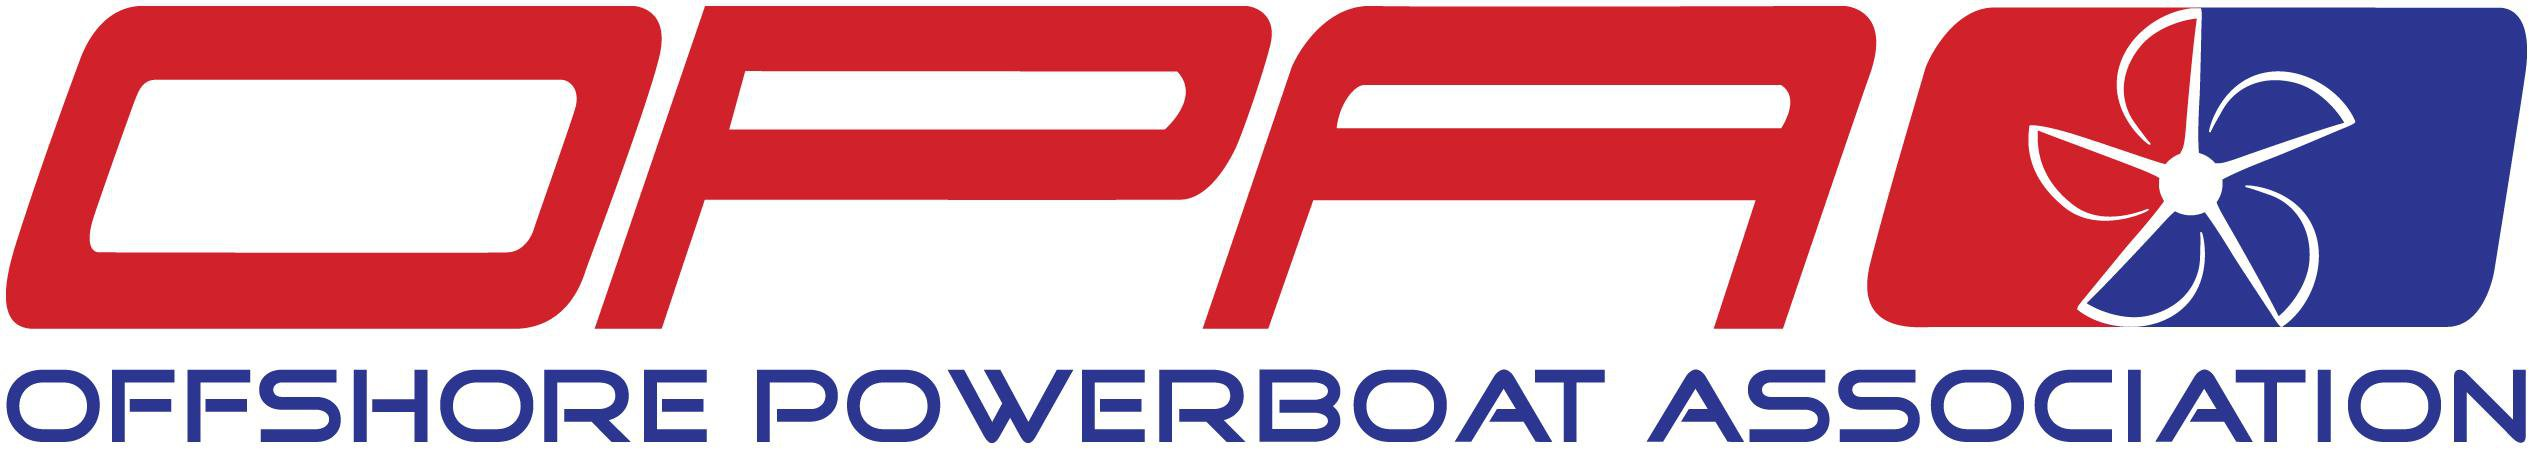 Offshore Powerboat Association Logo